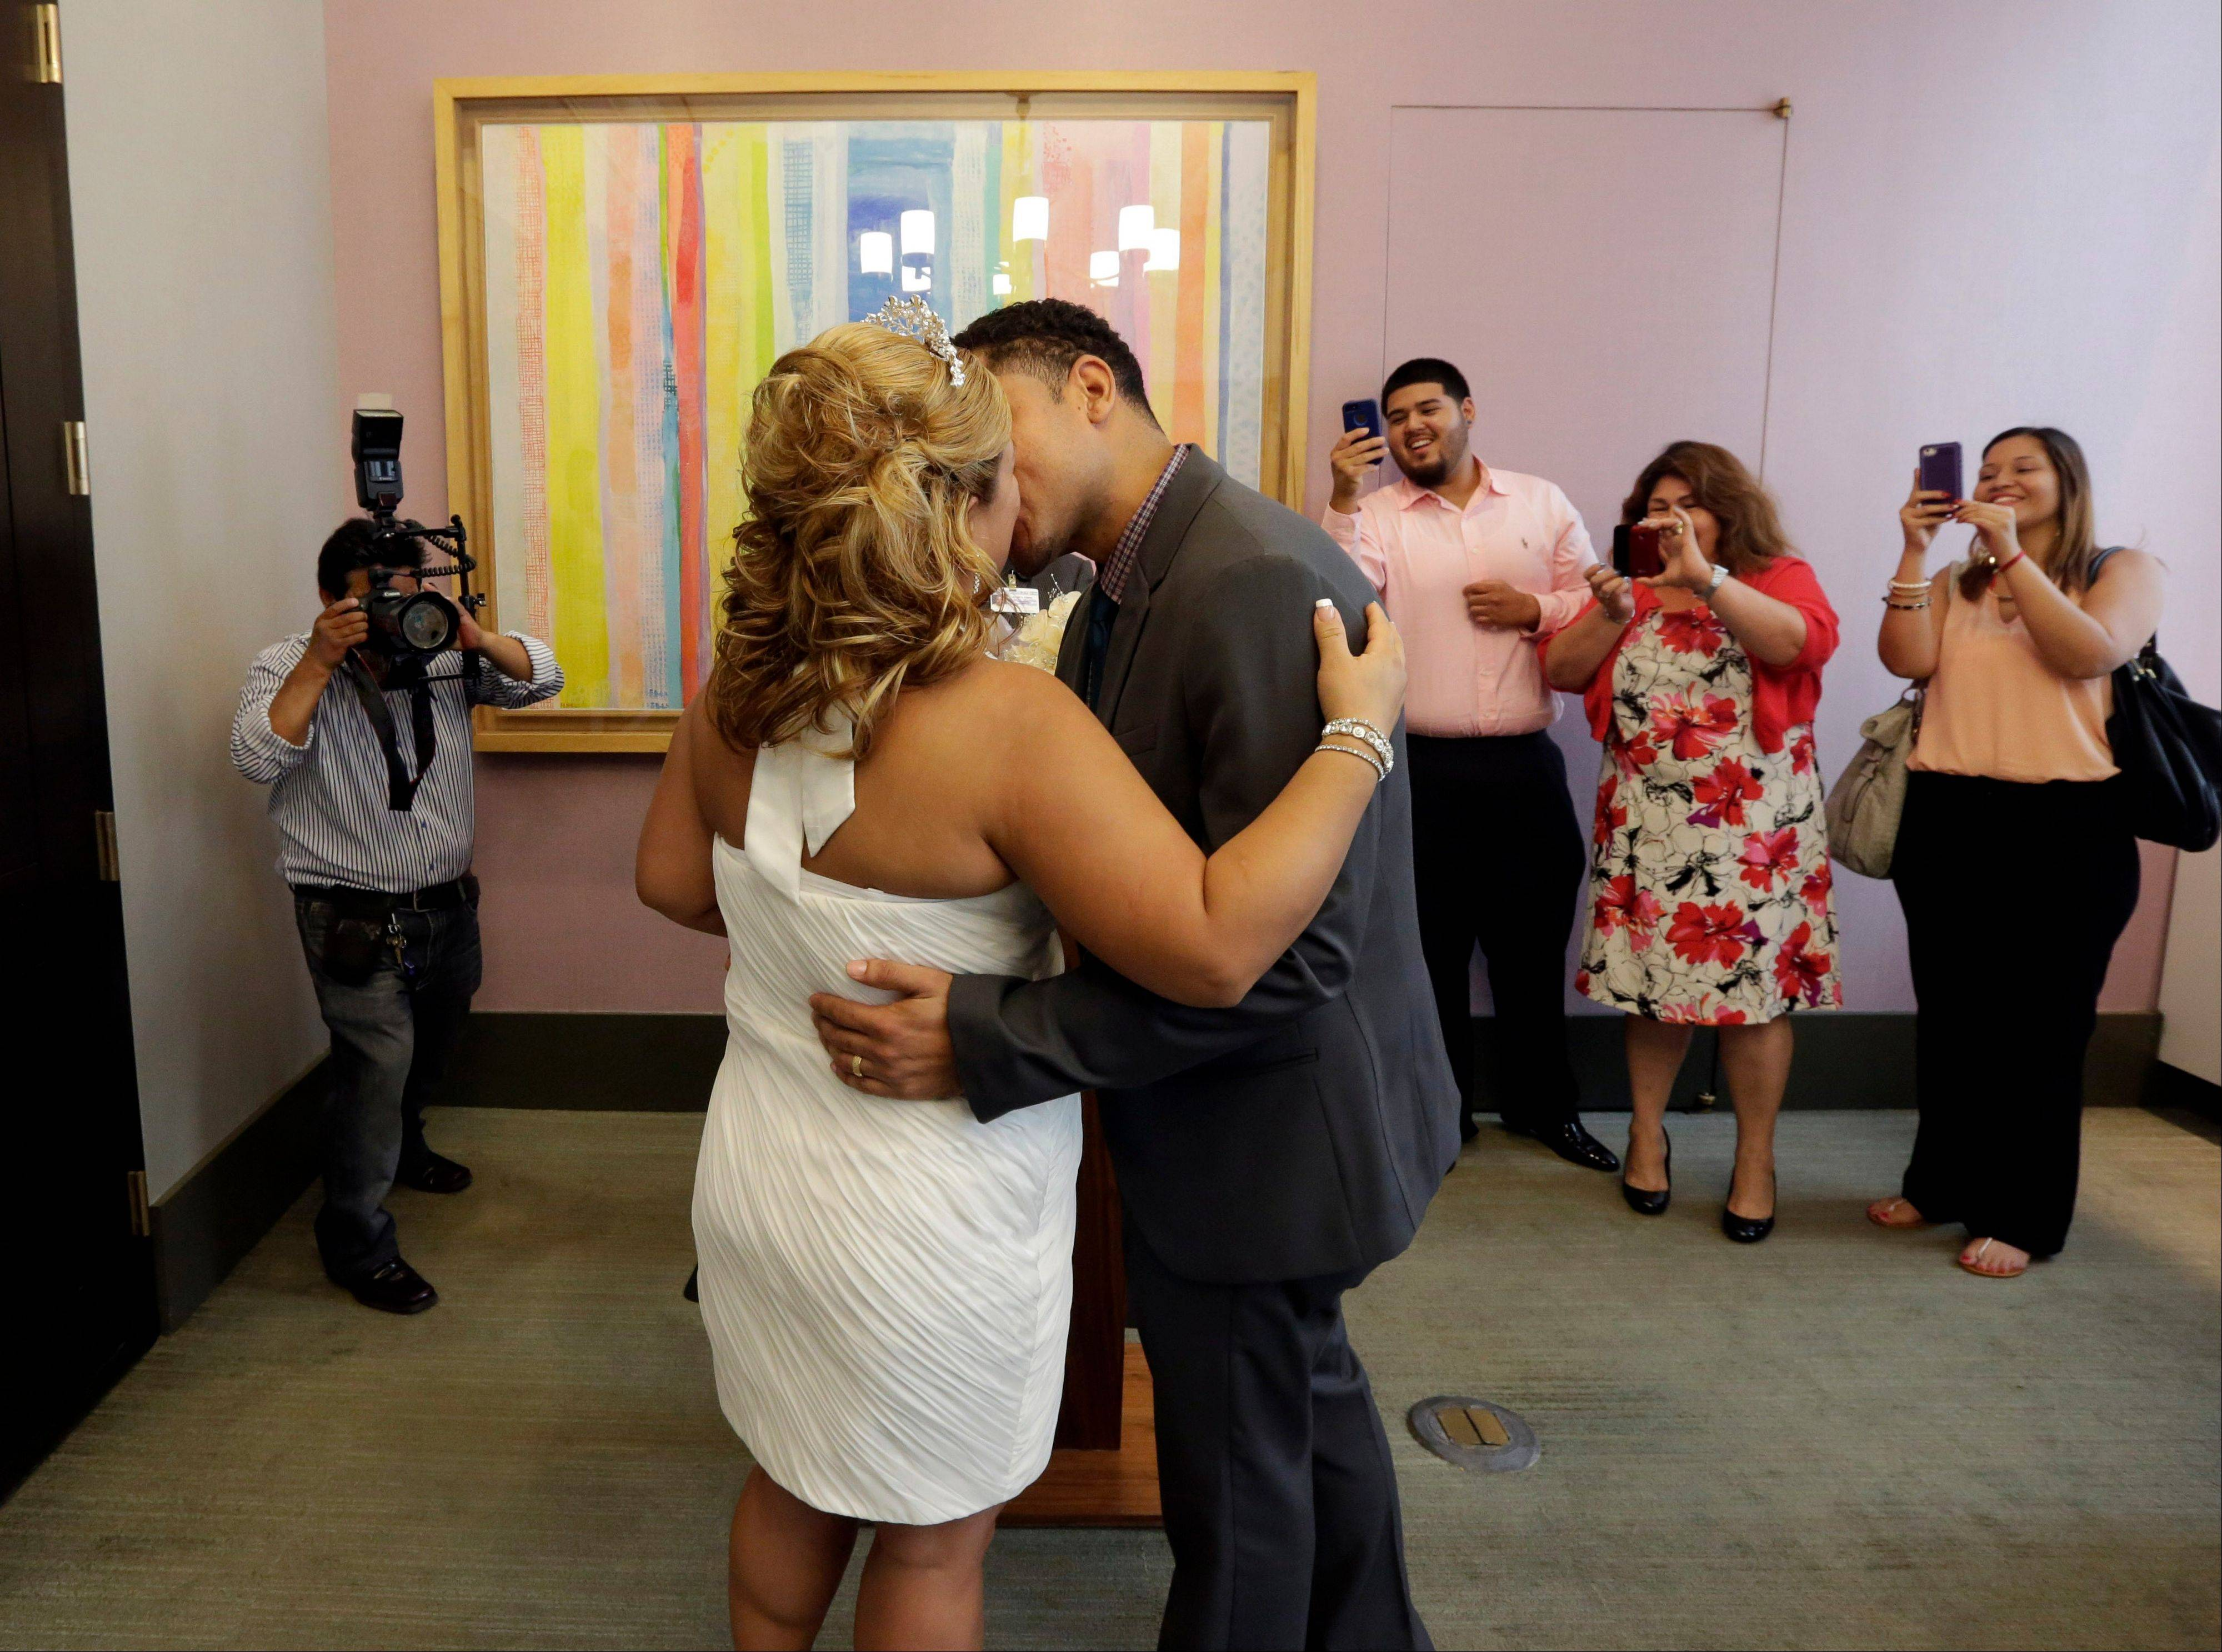 Wedding photographer Braulio Cuenca, left, captures the moment as groom Jorge Mejia and bride Irma Aguilar, of the Bronx borough of New York, kiss after their ceremony, inside a chapel at New York's Office of the City Clerk.